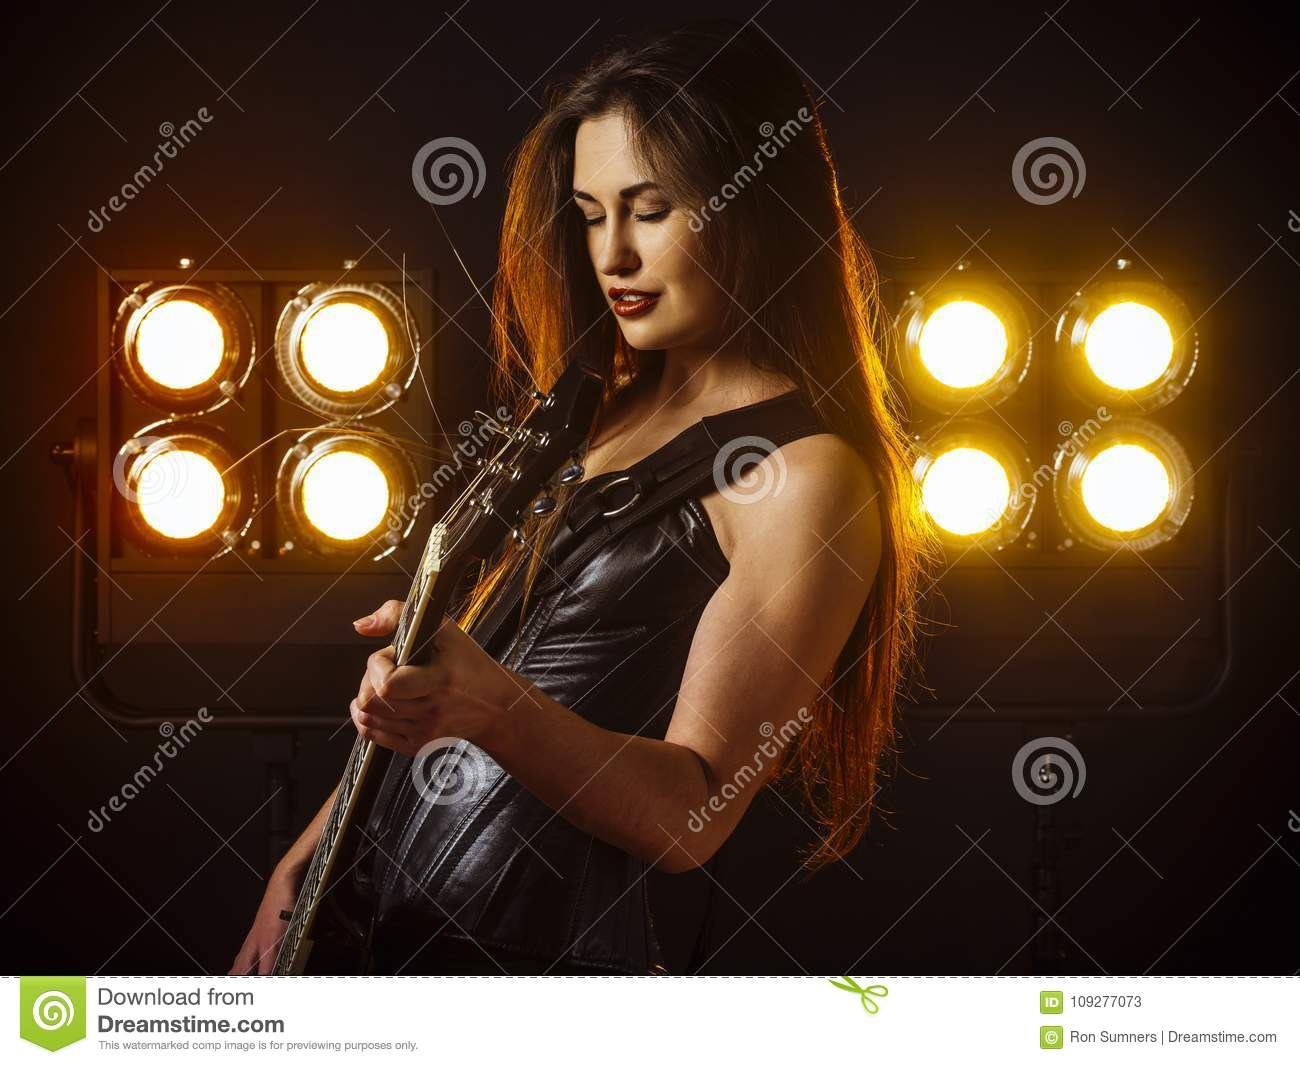 woman playing electric guitar on stage